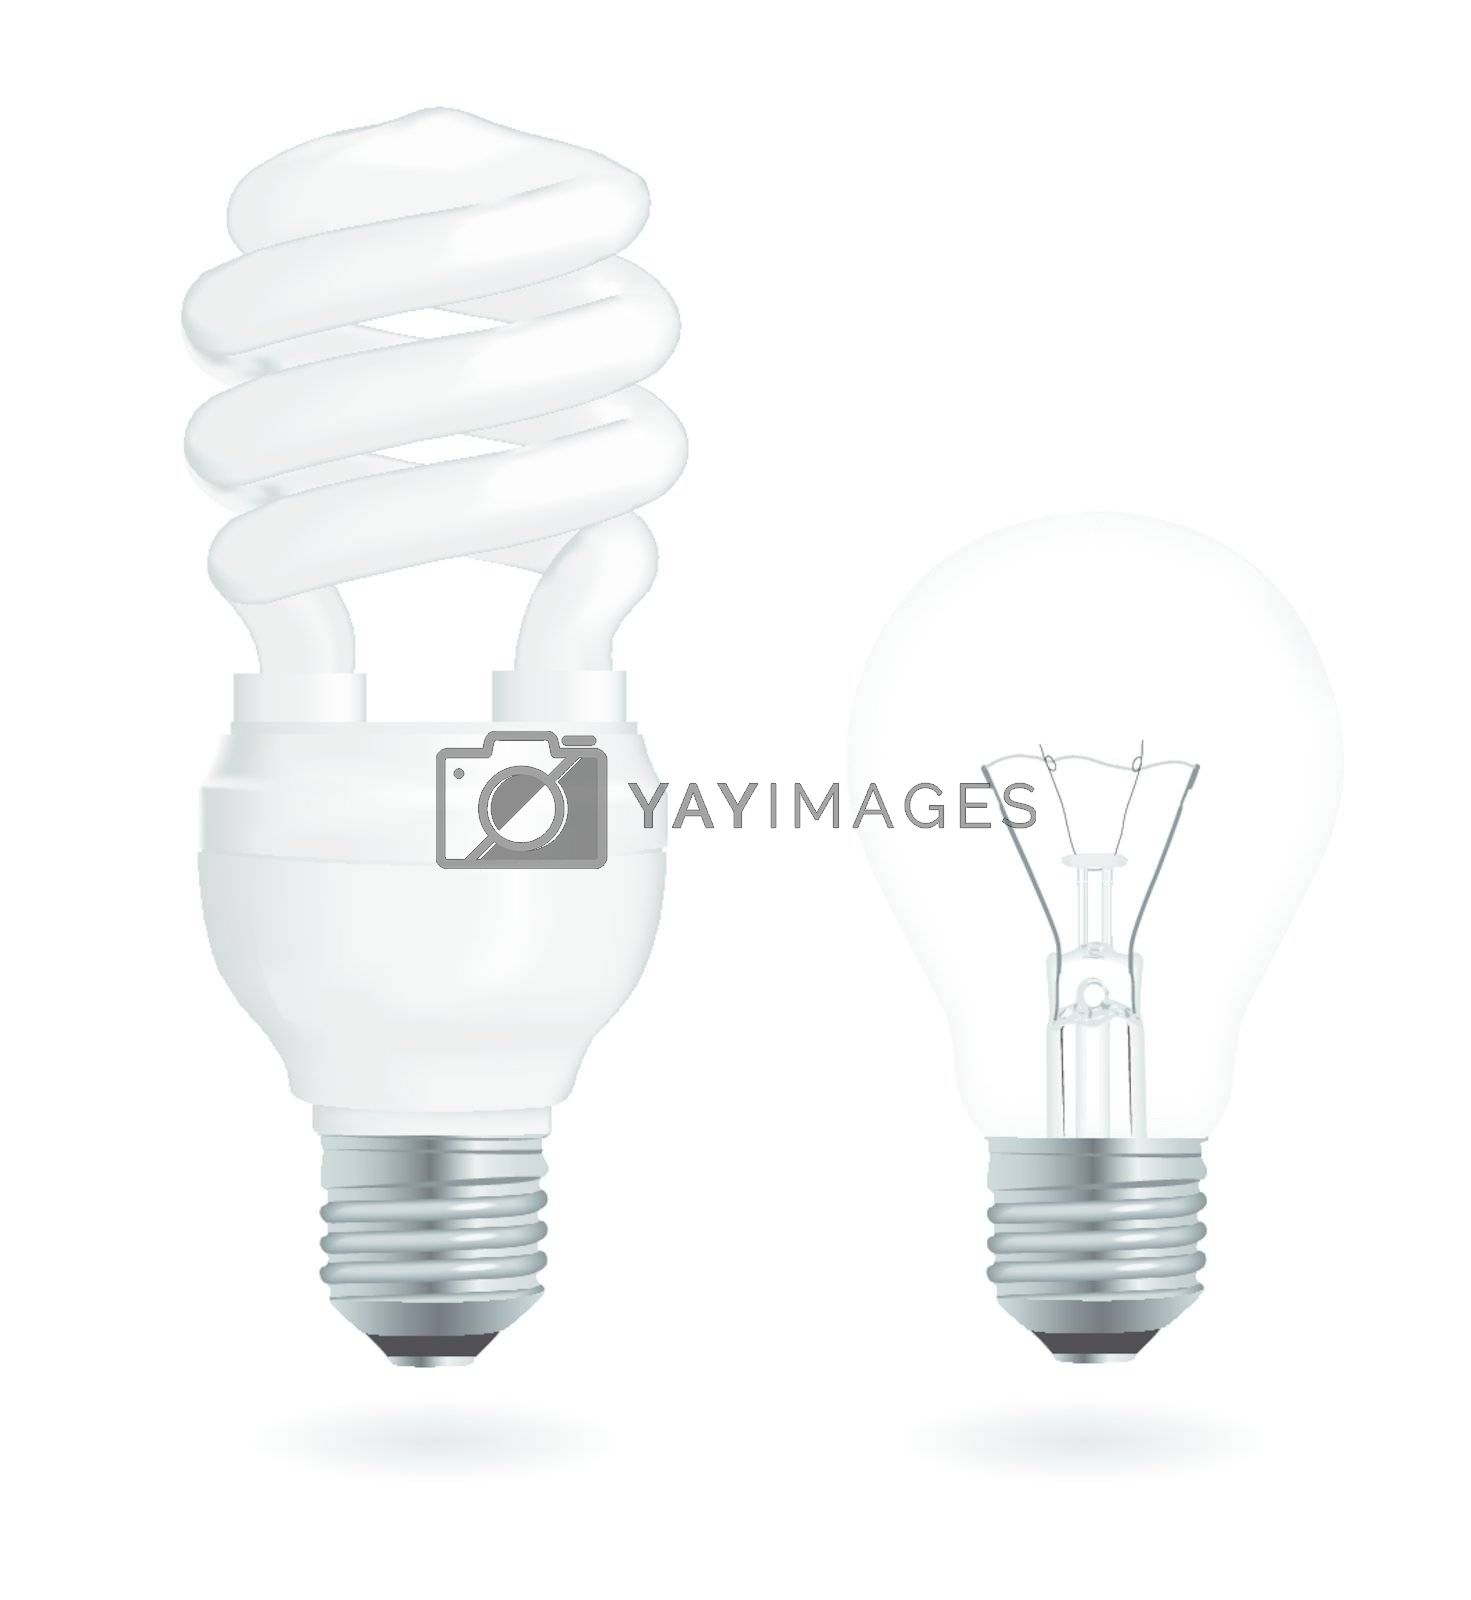 Incandescent and fluorescent light bulbs by smoki